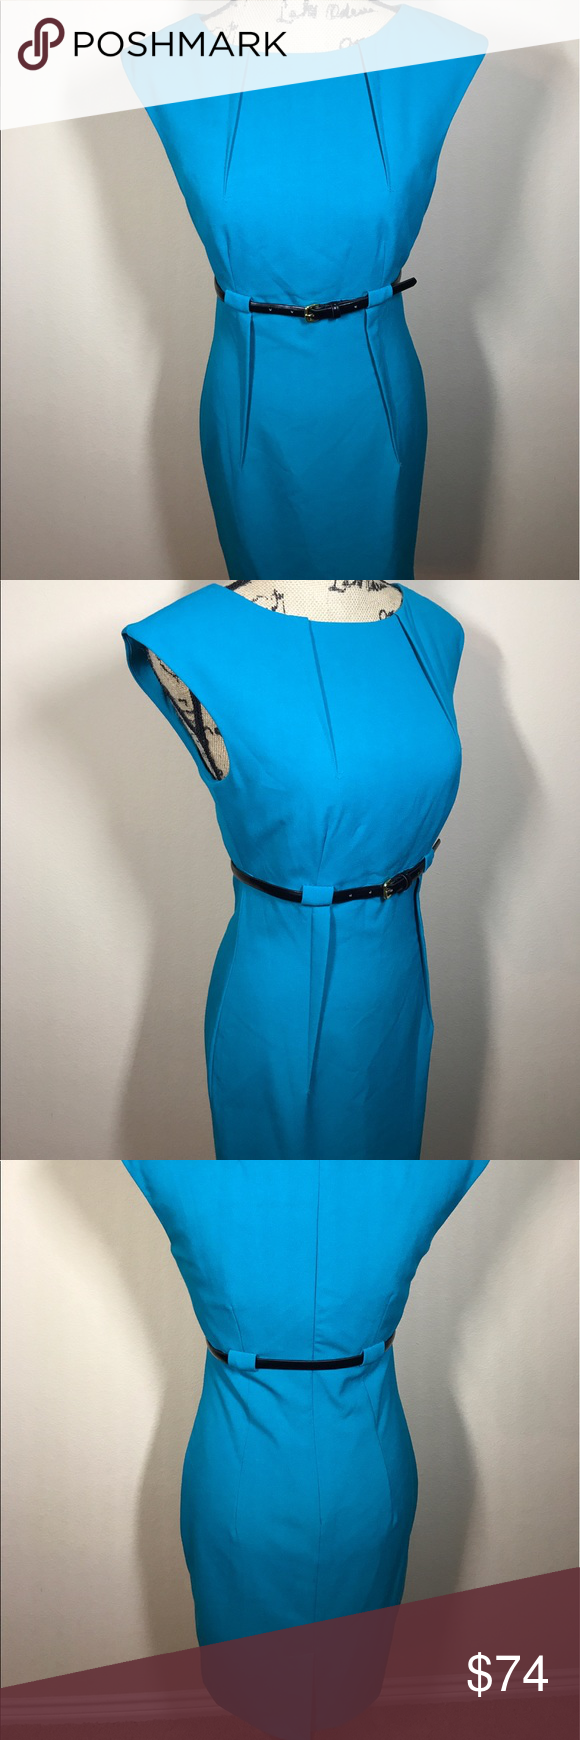 NWT Calvin Klein Sheath Dress 63% Polyester/33% Rayon/4% Spandex  Imported  Polyester lining  Zipper closure  Dry Clean Only  Cap-sleeve sheath dress in featuring pleated front and belt at empire waist  Concealed back zipper  ——————————————  Same dress with different colors are in still in stores for original price of $134.00 Calvin Klein Dresses